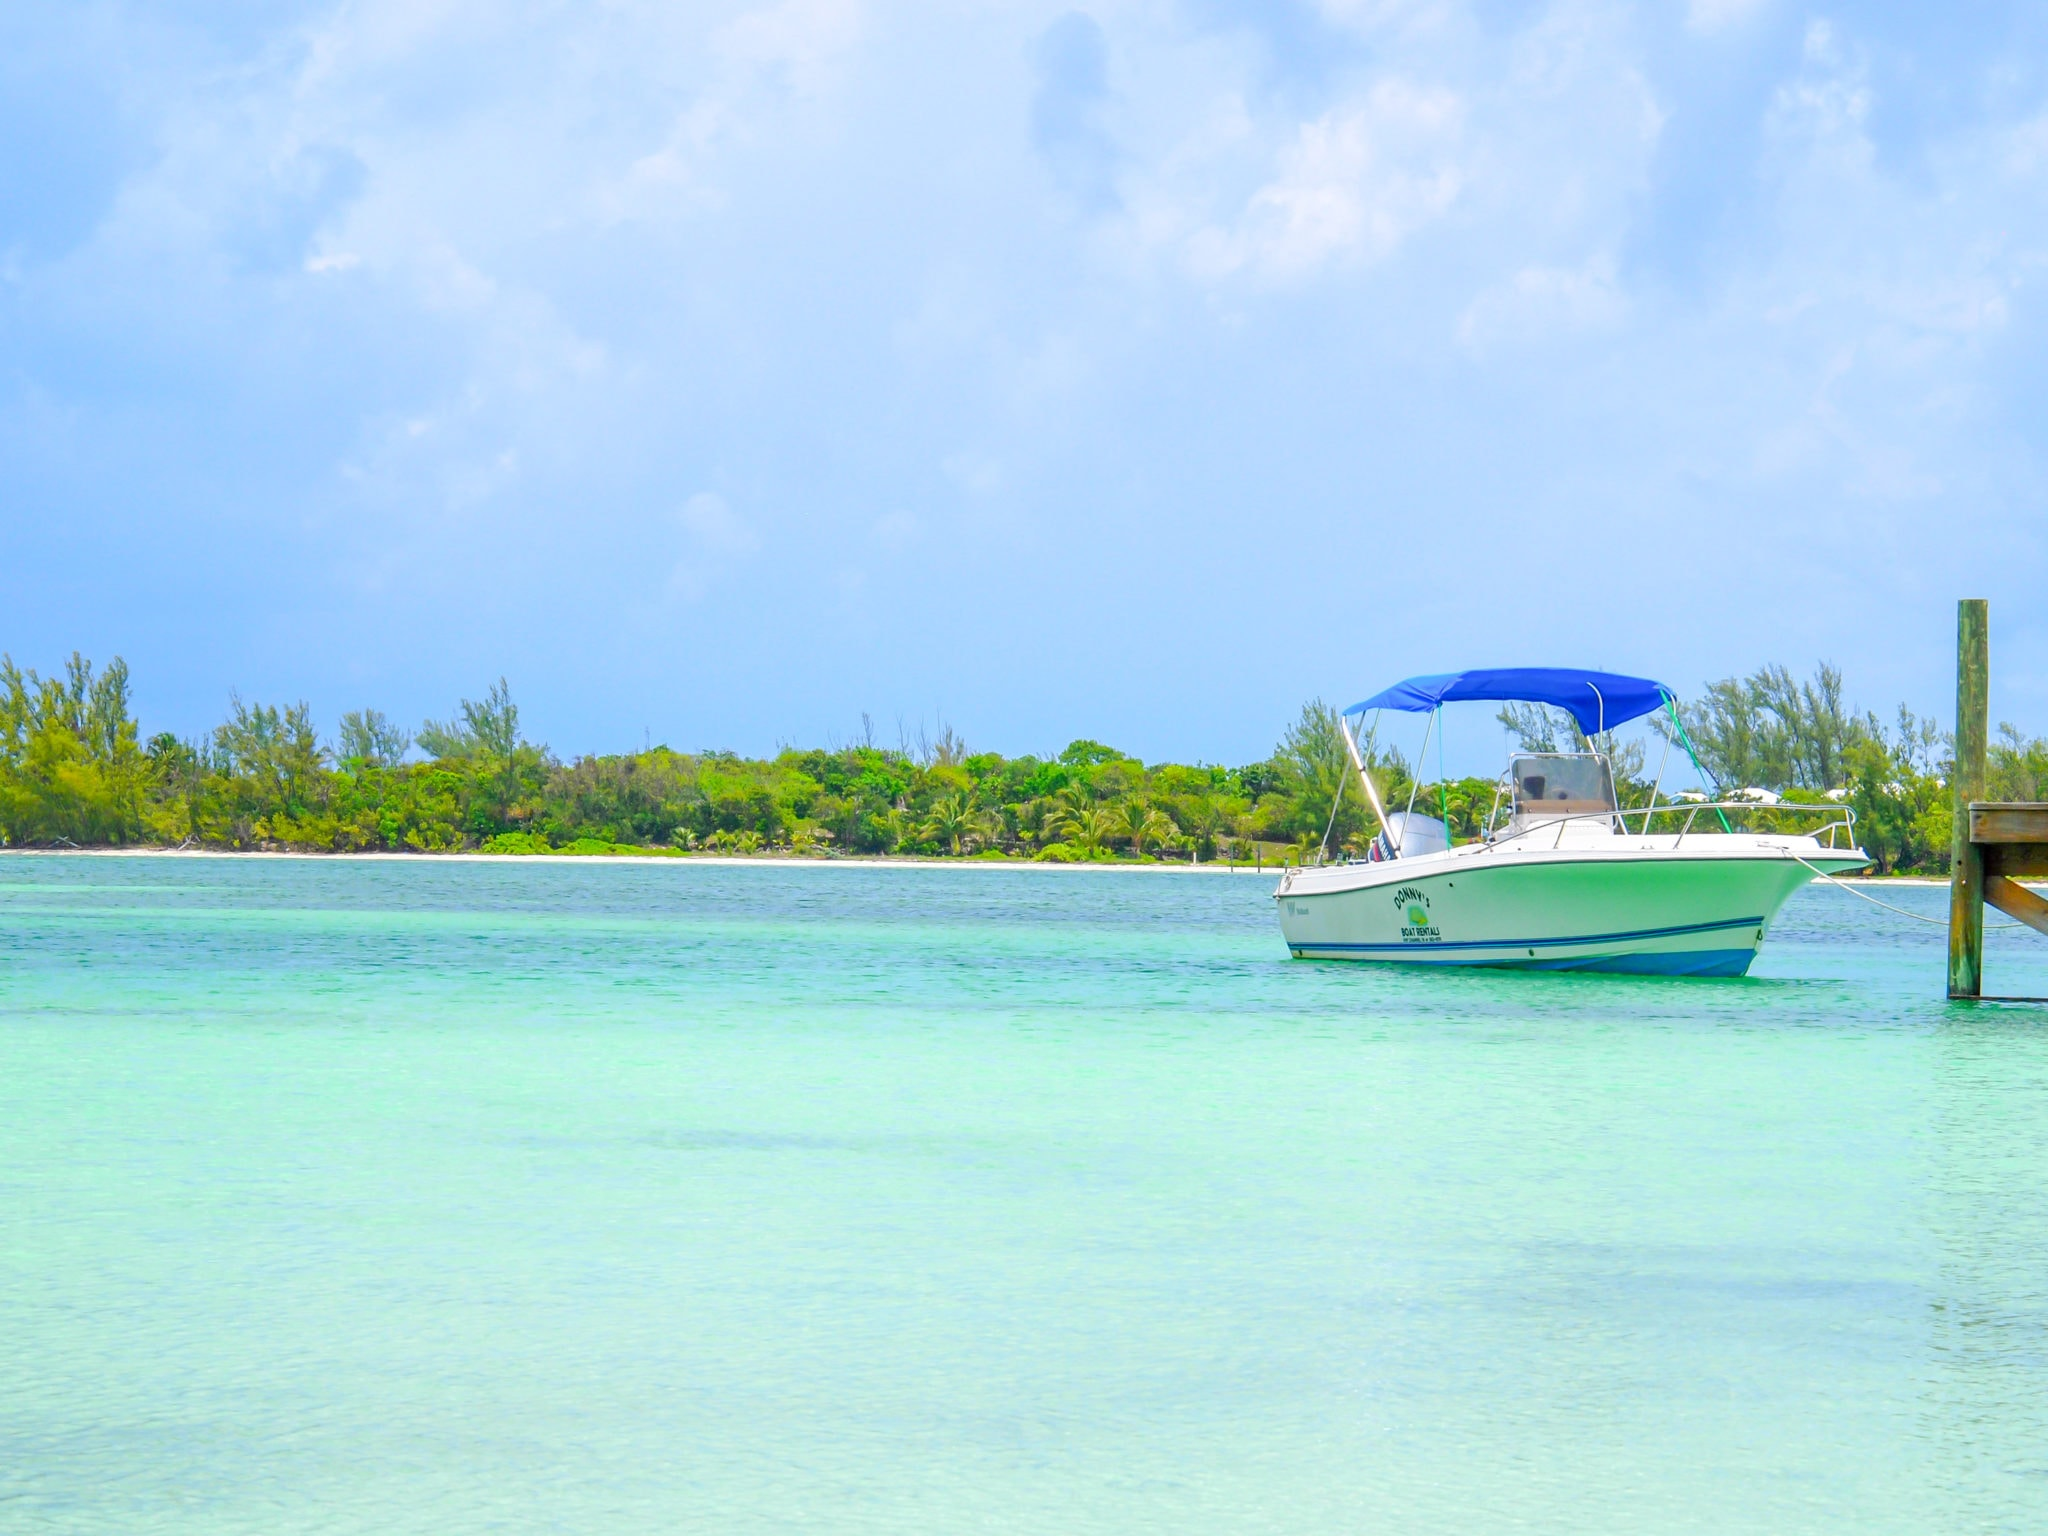 Coolin' on Coco Beach, Green Turtle Cay, Bahamas